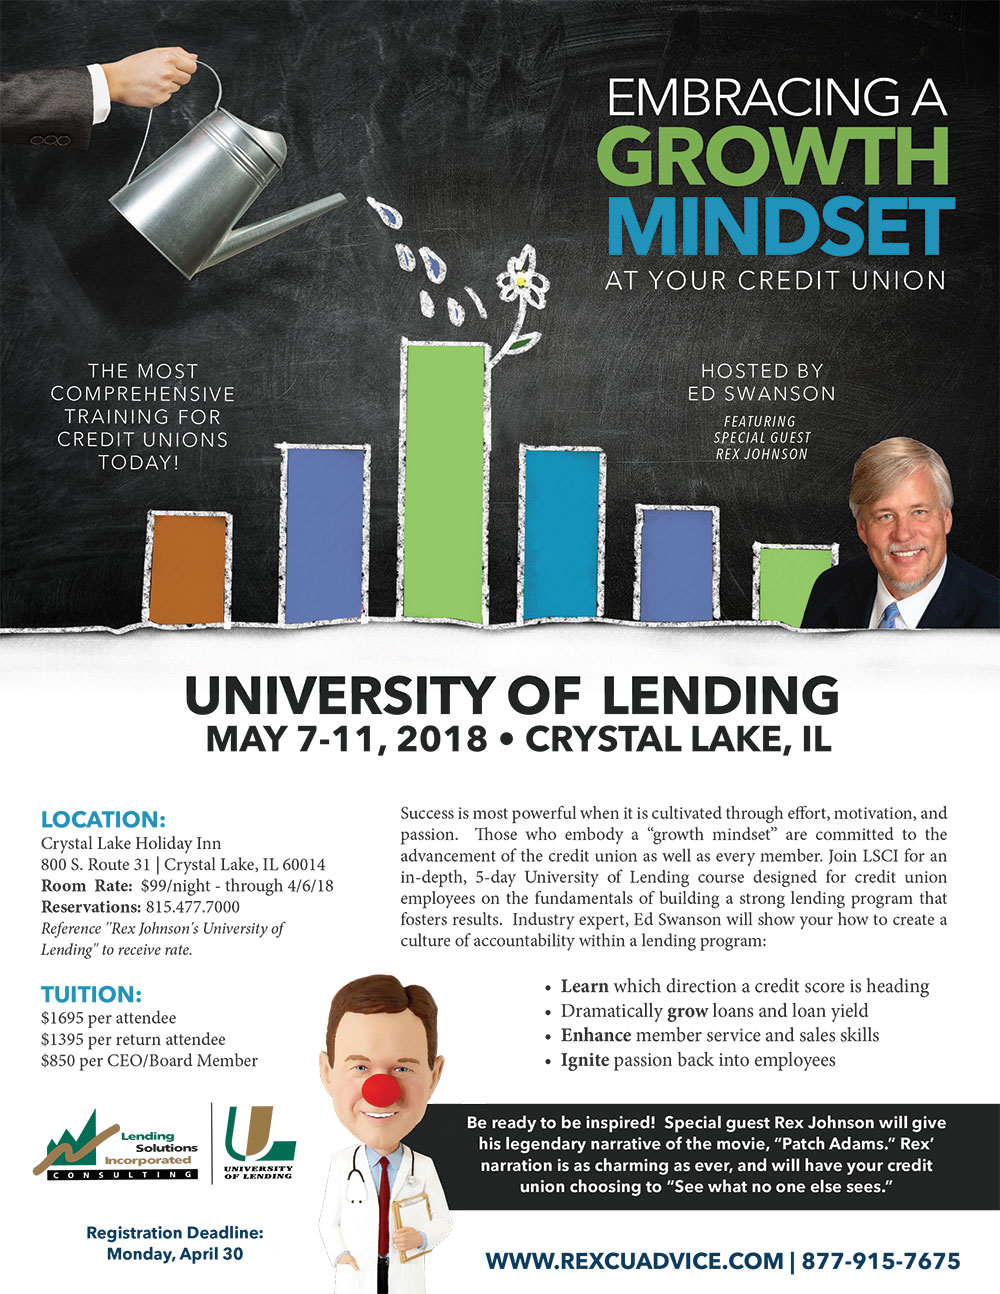 5-Day University of Lending - Crystal Lake, IL - May 7-11, 2018